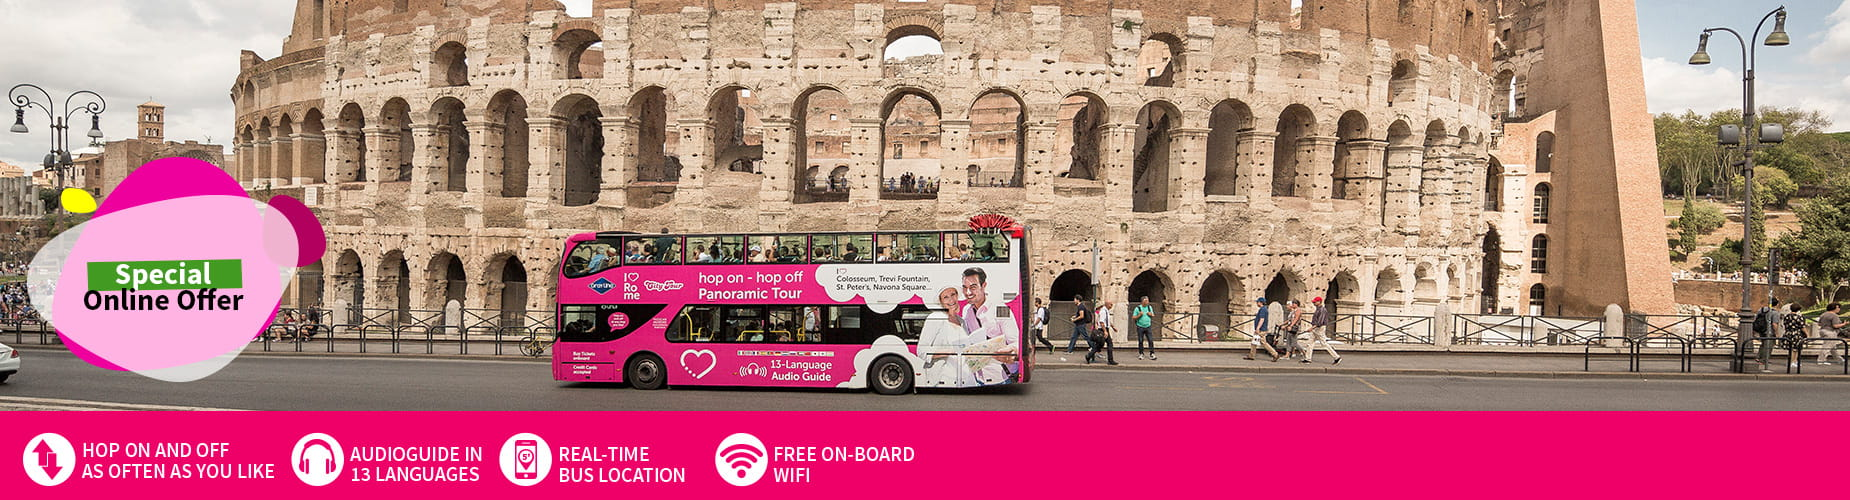 1850x500_slide-roma_bus_ENG